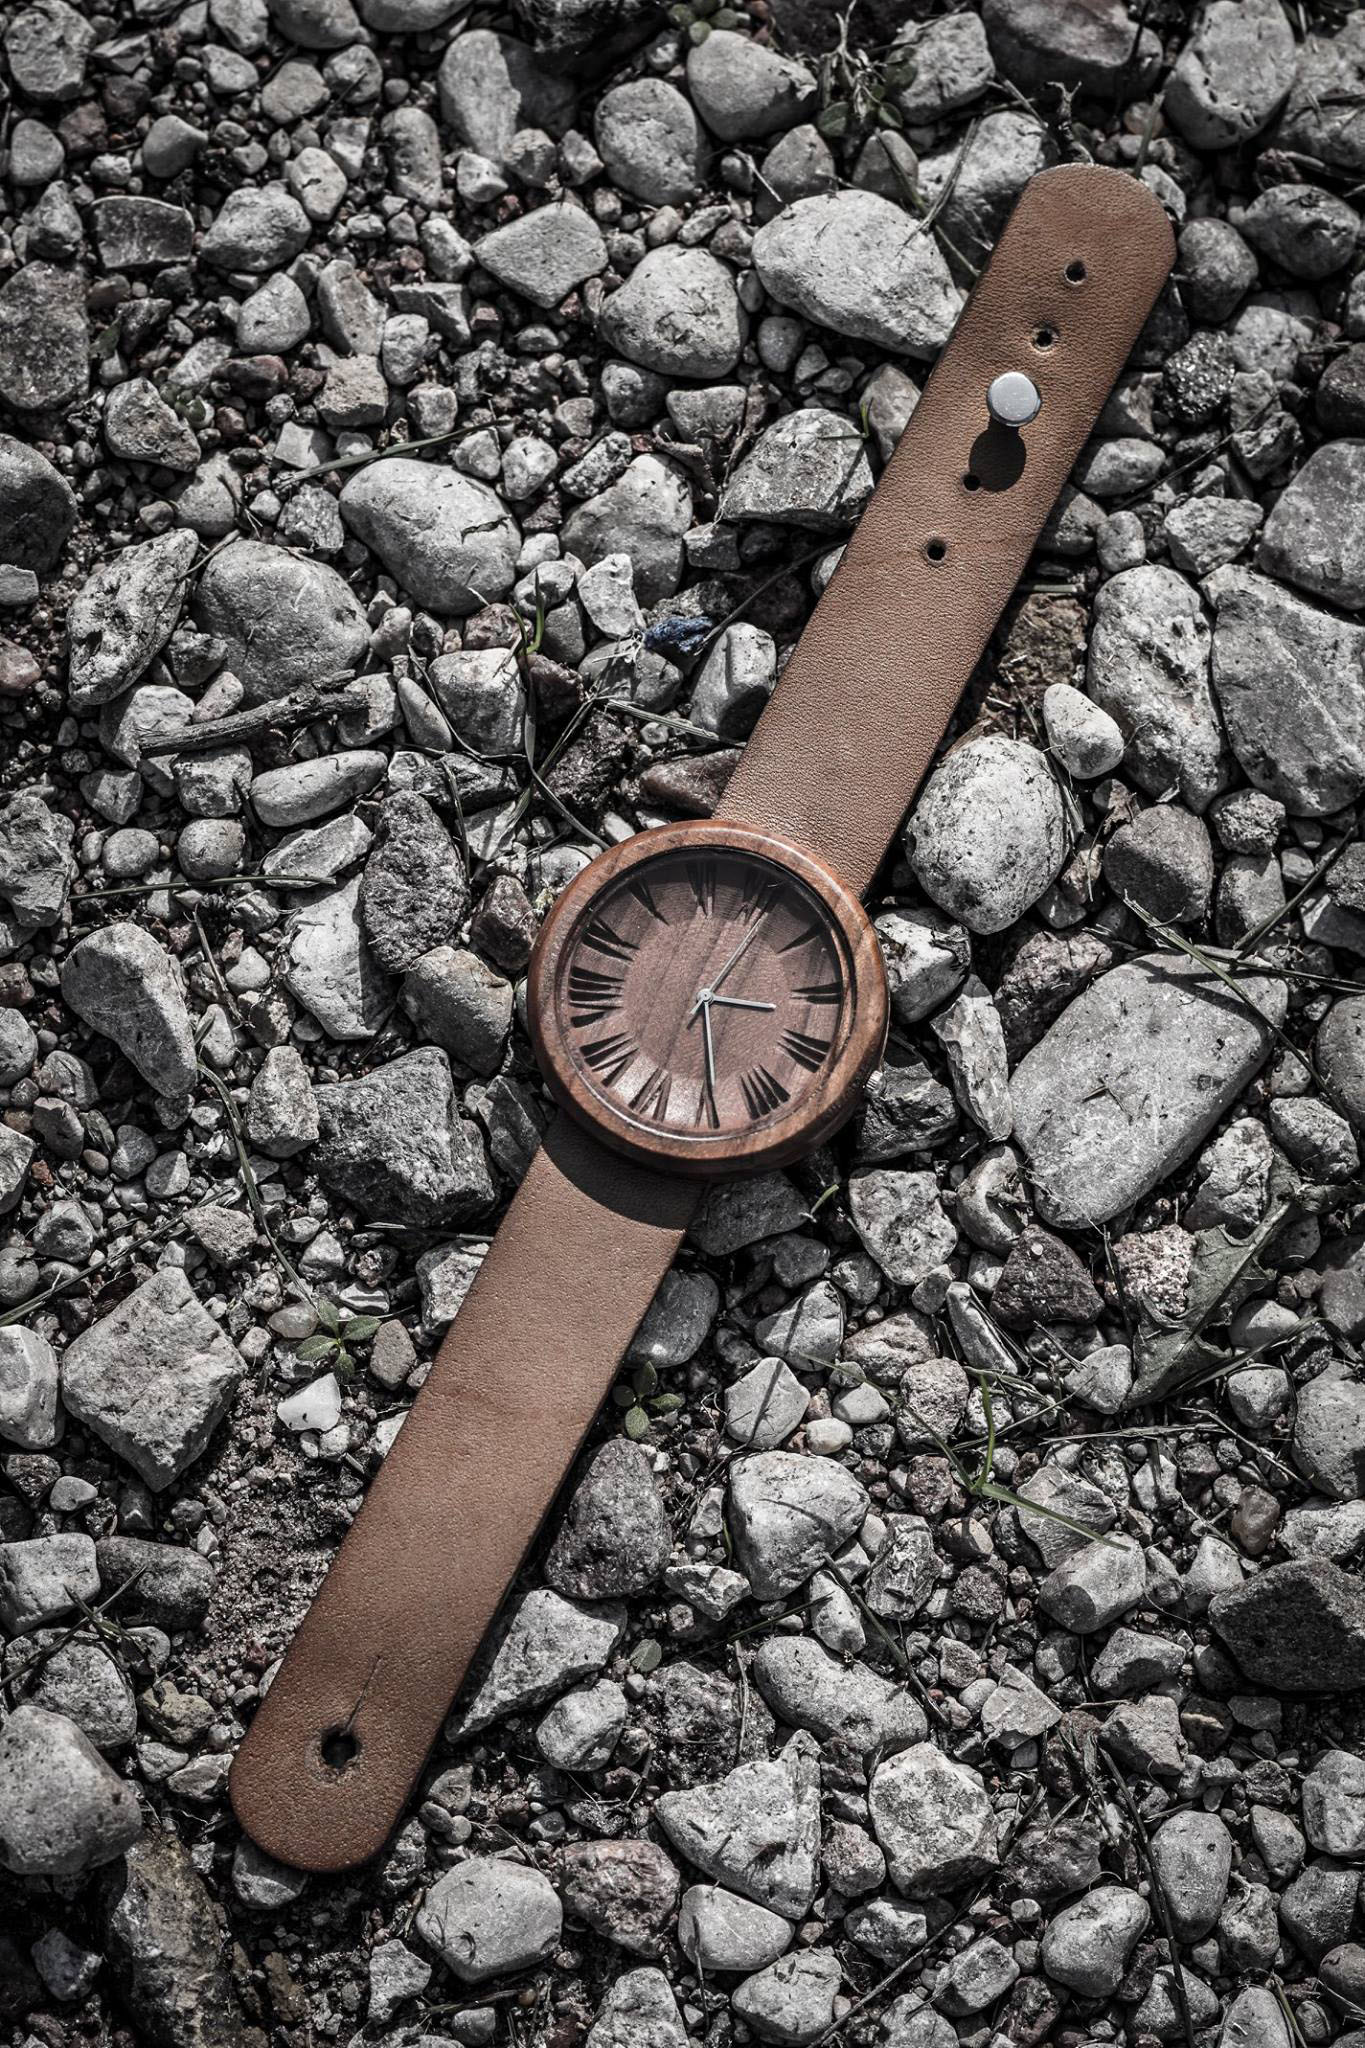 e58b99dfb Ovi Watches need your help to see their wooden watch empire grow ...